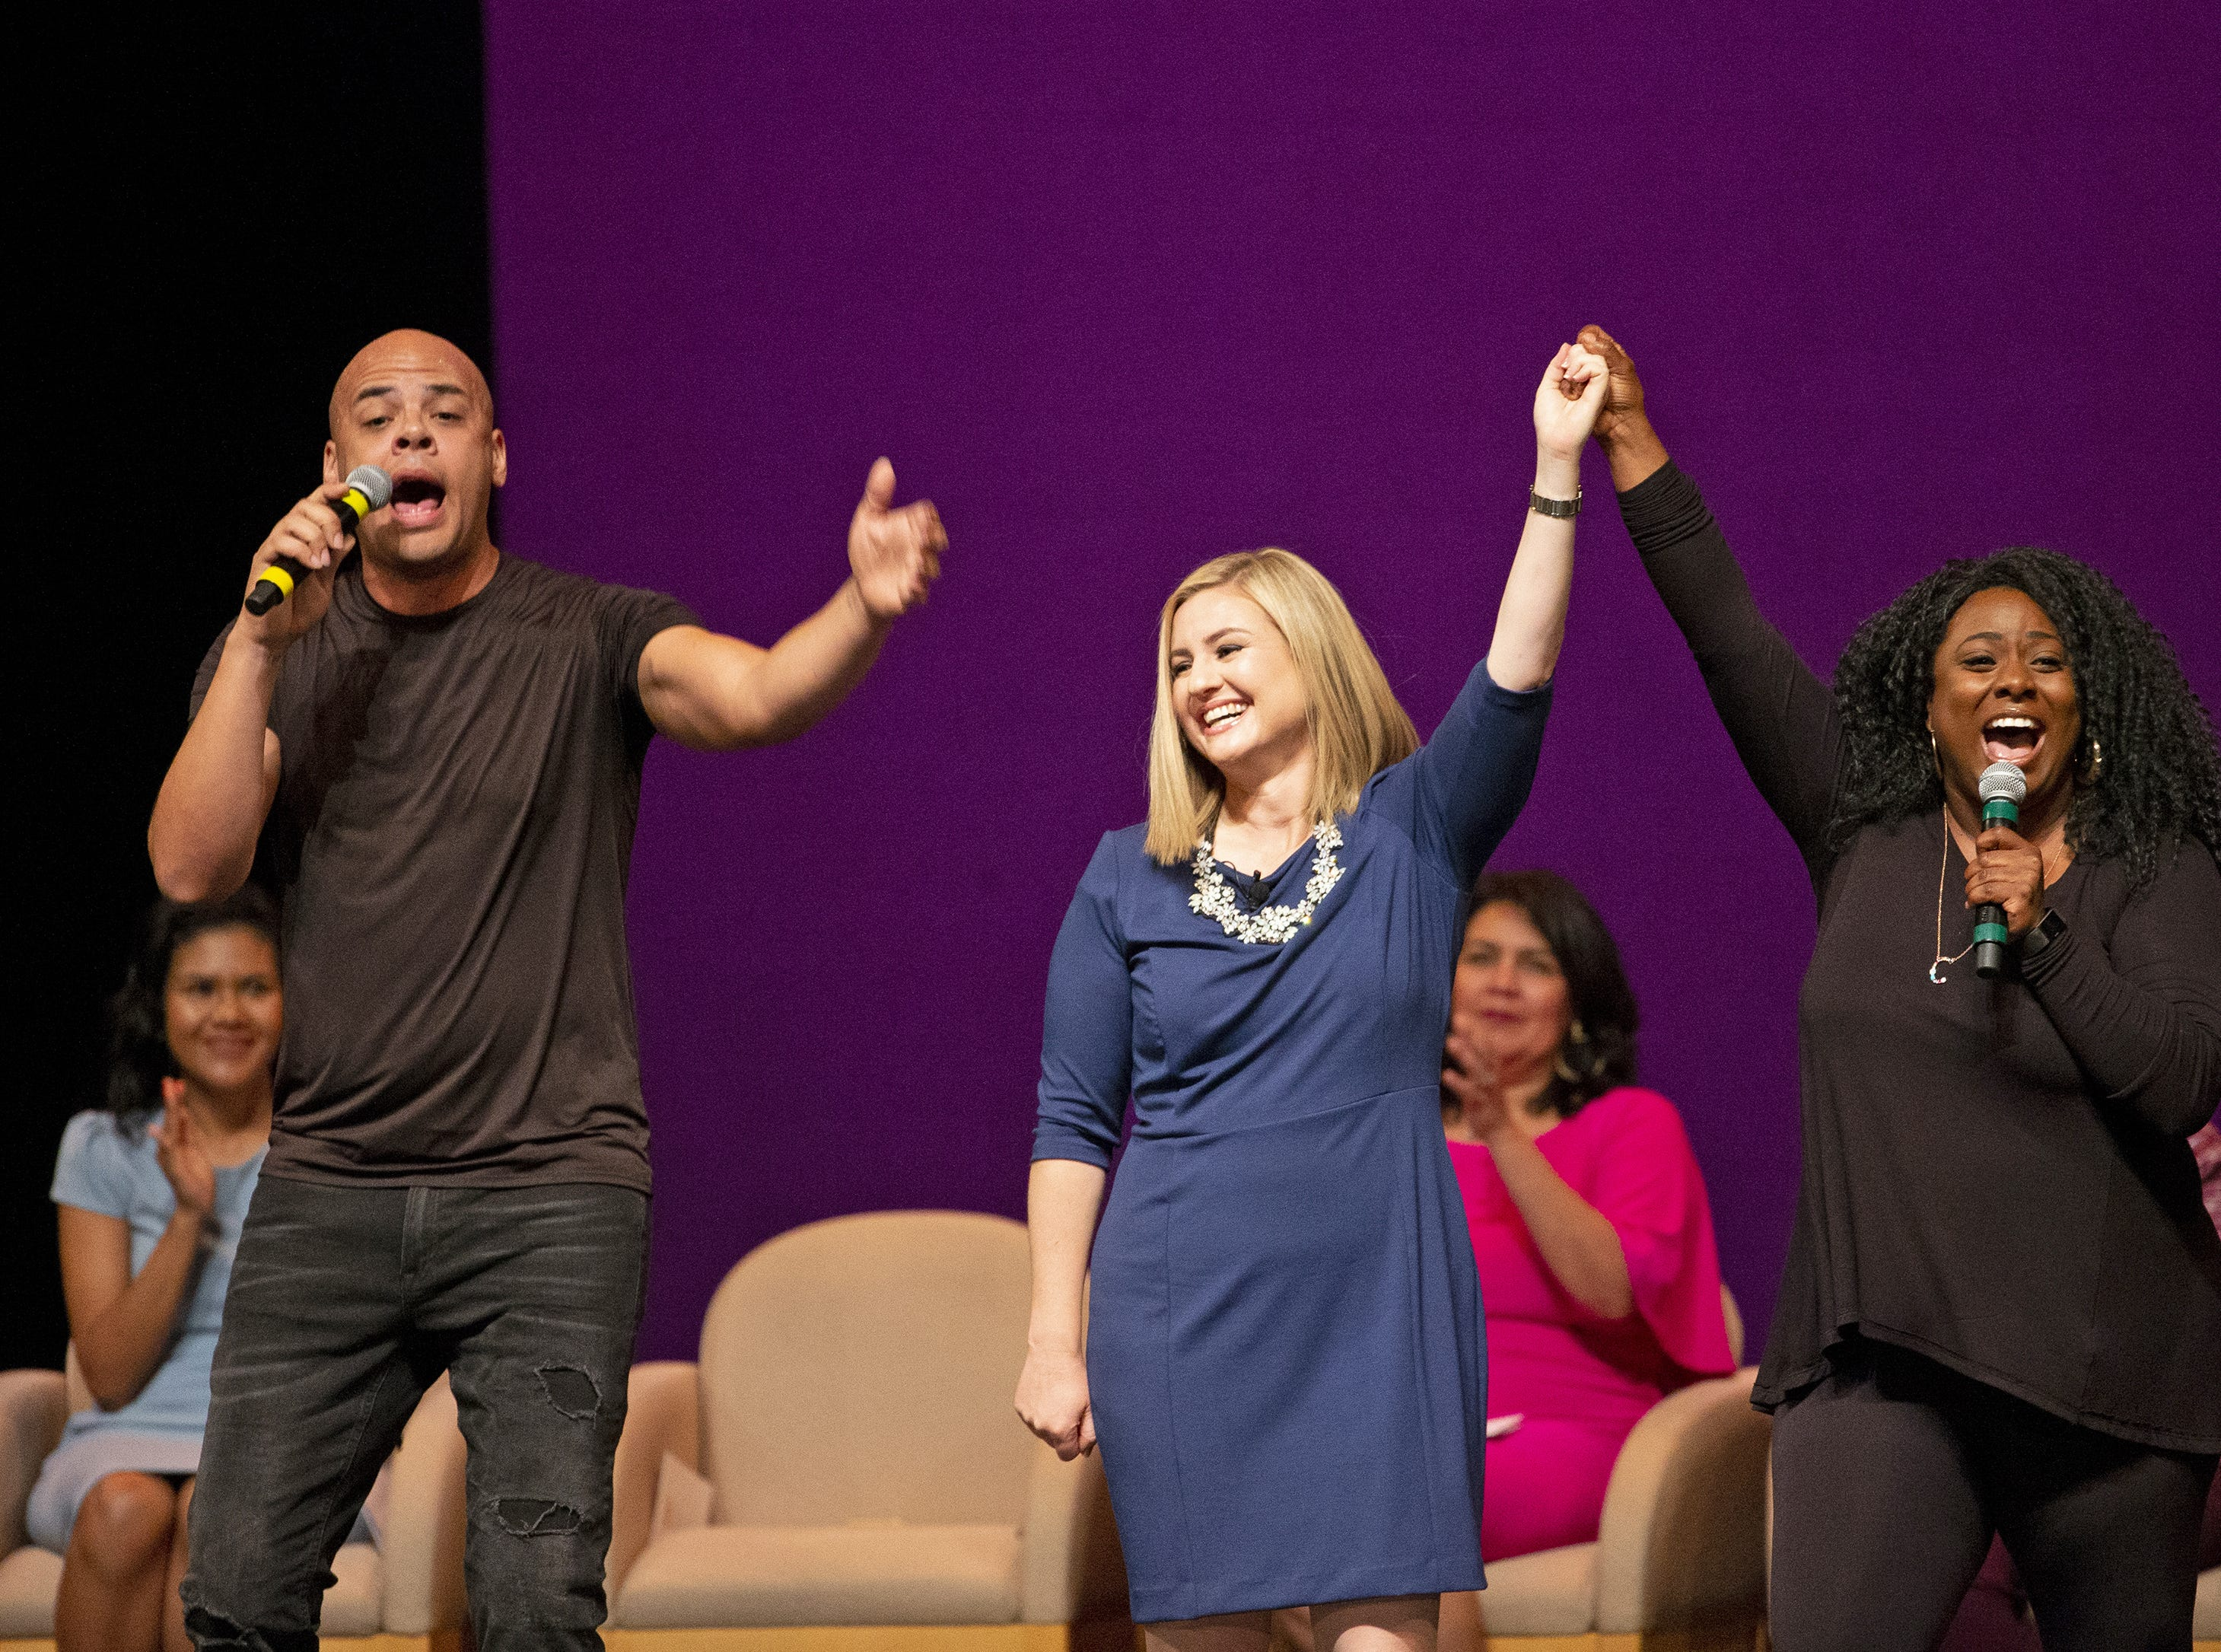 Kate Gallego celebrates during her inauguration ceremony as the new mayor of Phoenix with members of Bragg About It on March 21 at the Orpheum Theatre in Phoenix, Ariz.